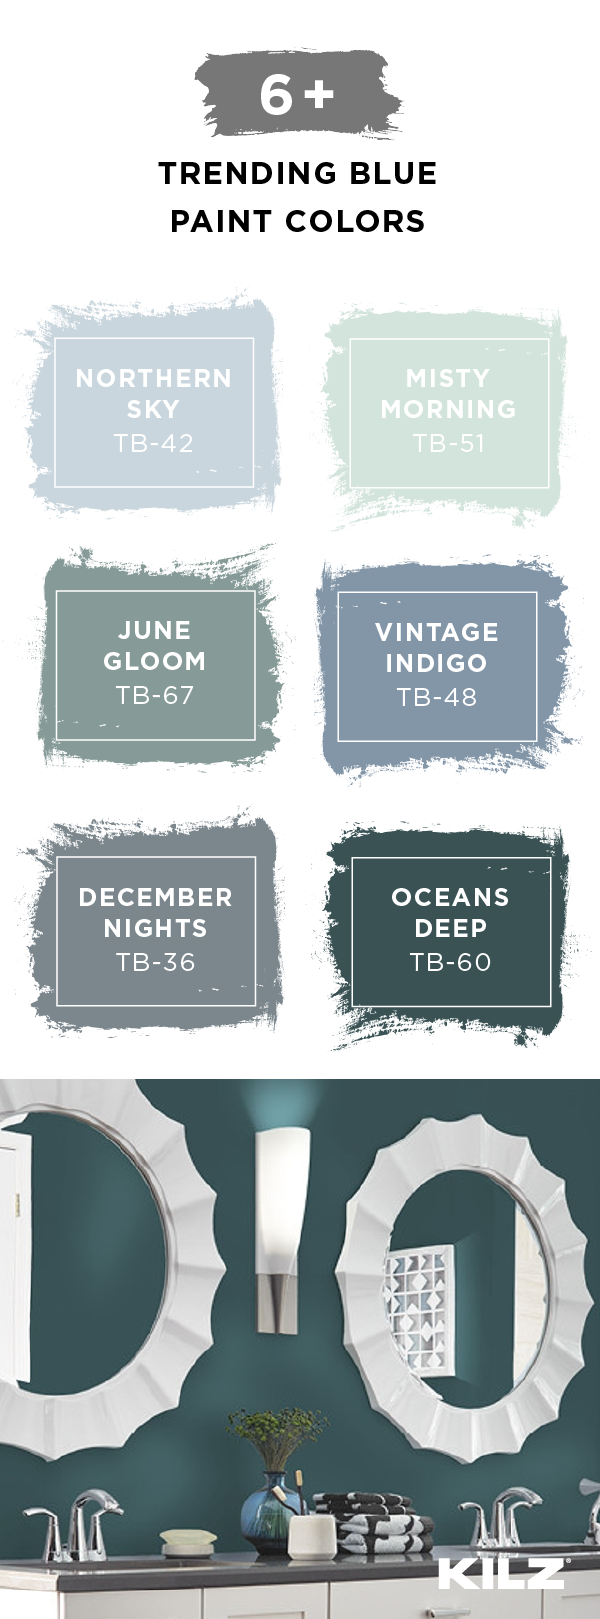 This Trending Blue Paint Color Palette From Kilz Has The Perfect